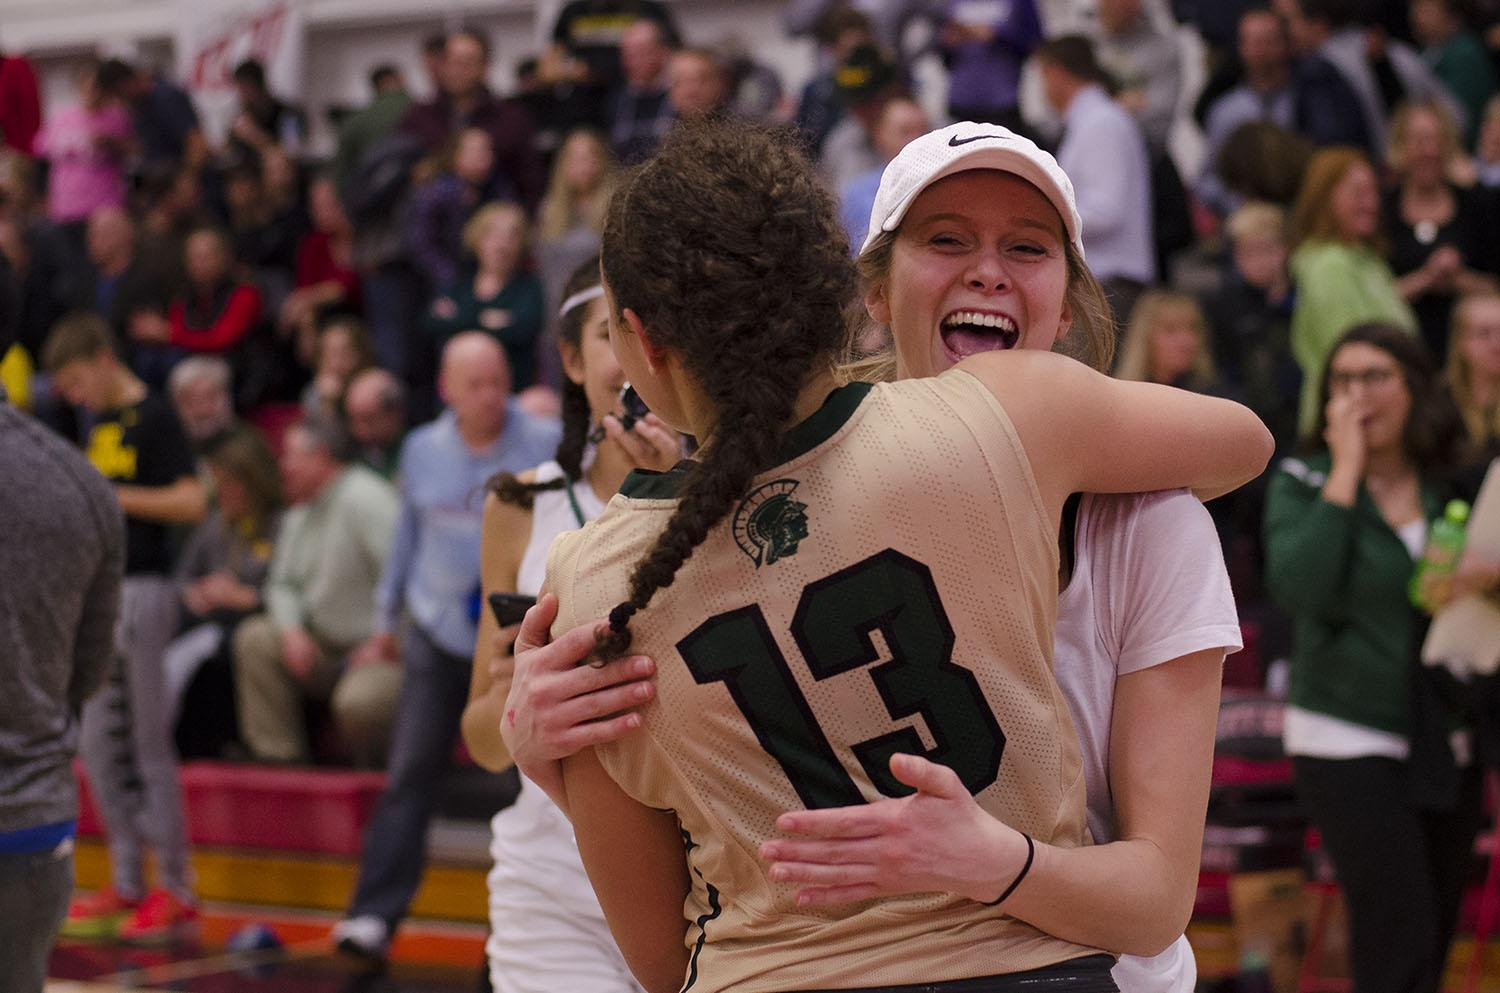 Madi Ford '17 hugs Rachael Saunders '18 after their 5 point victory over City. Rachel said before the game that she wanted to break City's record and tonight she was able to accomplish that goal.